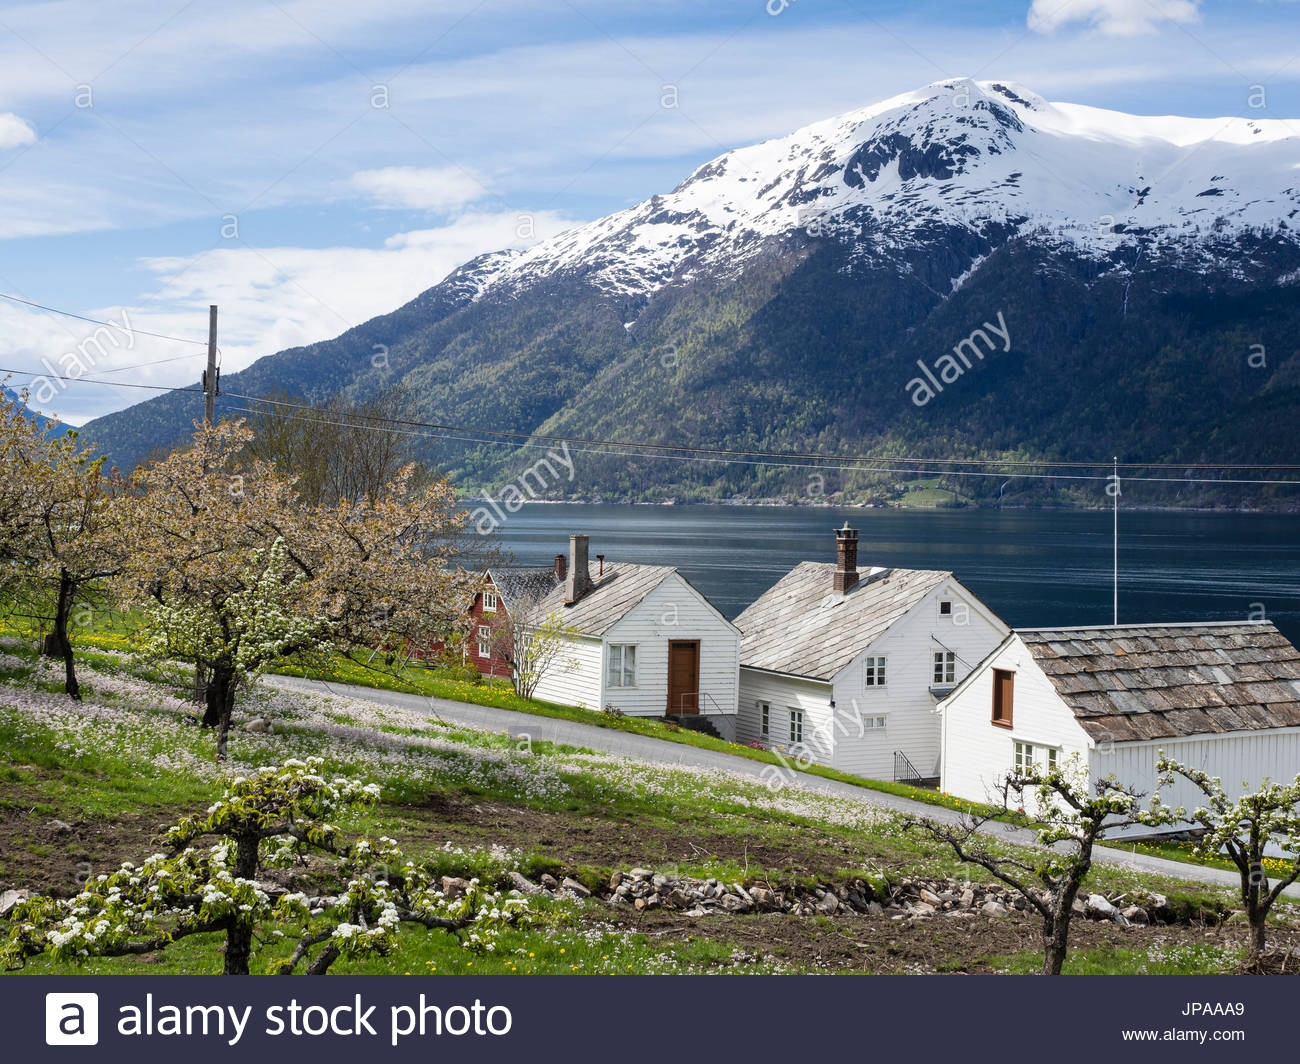 View of snow-covered mountains, fjord and apple trees in bloom, spring, white houses, Hardangerfjord near Lofthus, - Stock Image